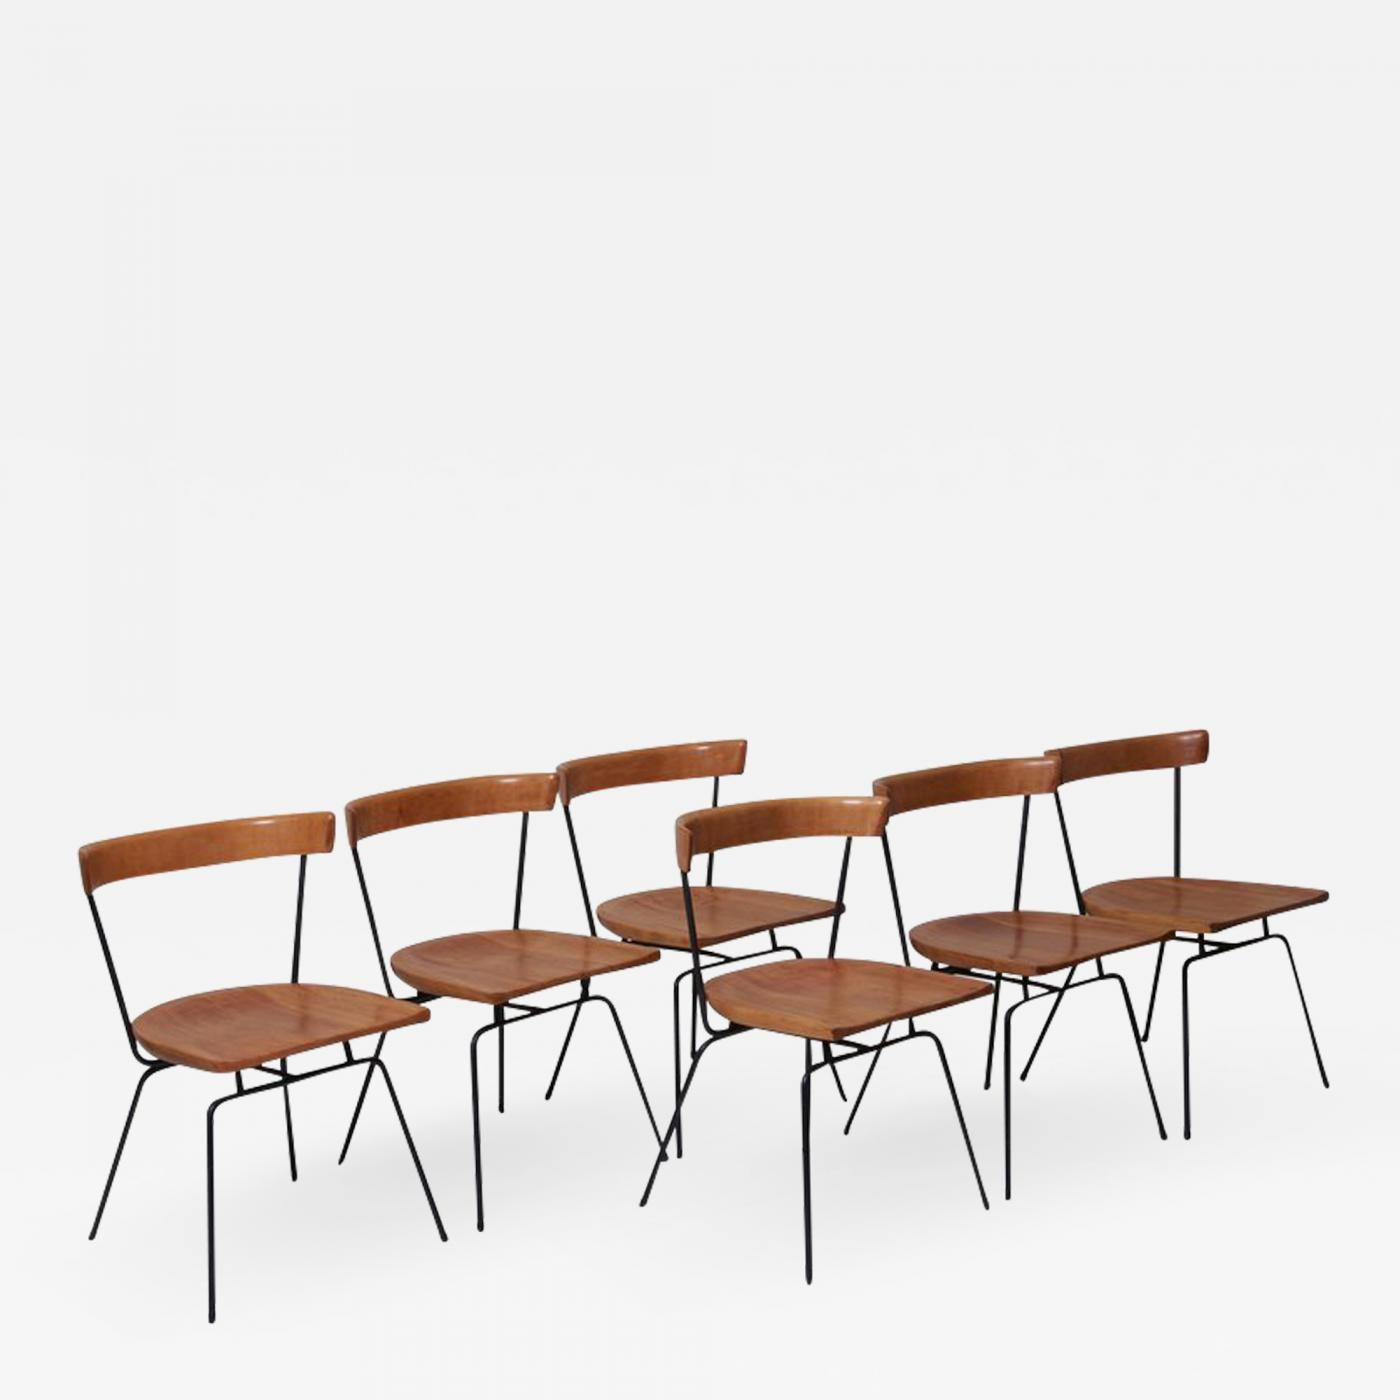 Paul Mccobb Chairs Paul Mccobb Set Of Six Matched 1535 Paul Mccobb Planner Group Dining Chairs For Winchendon